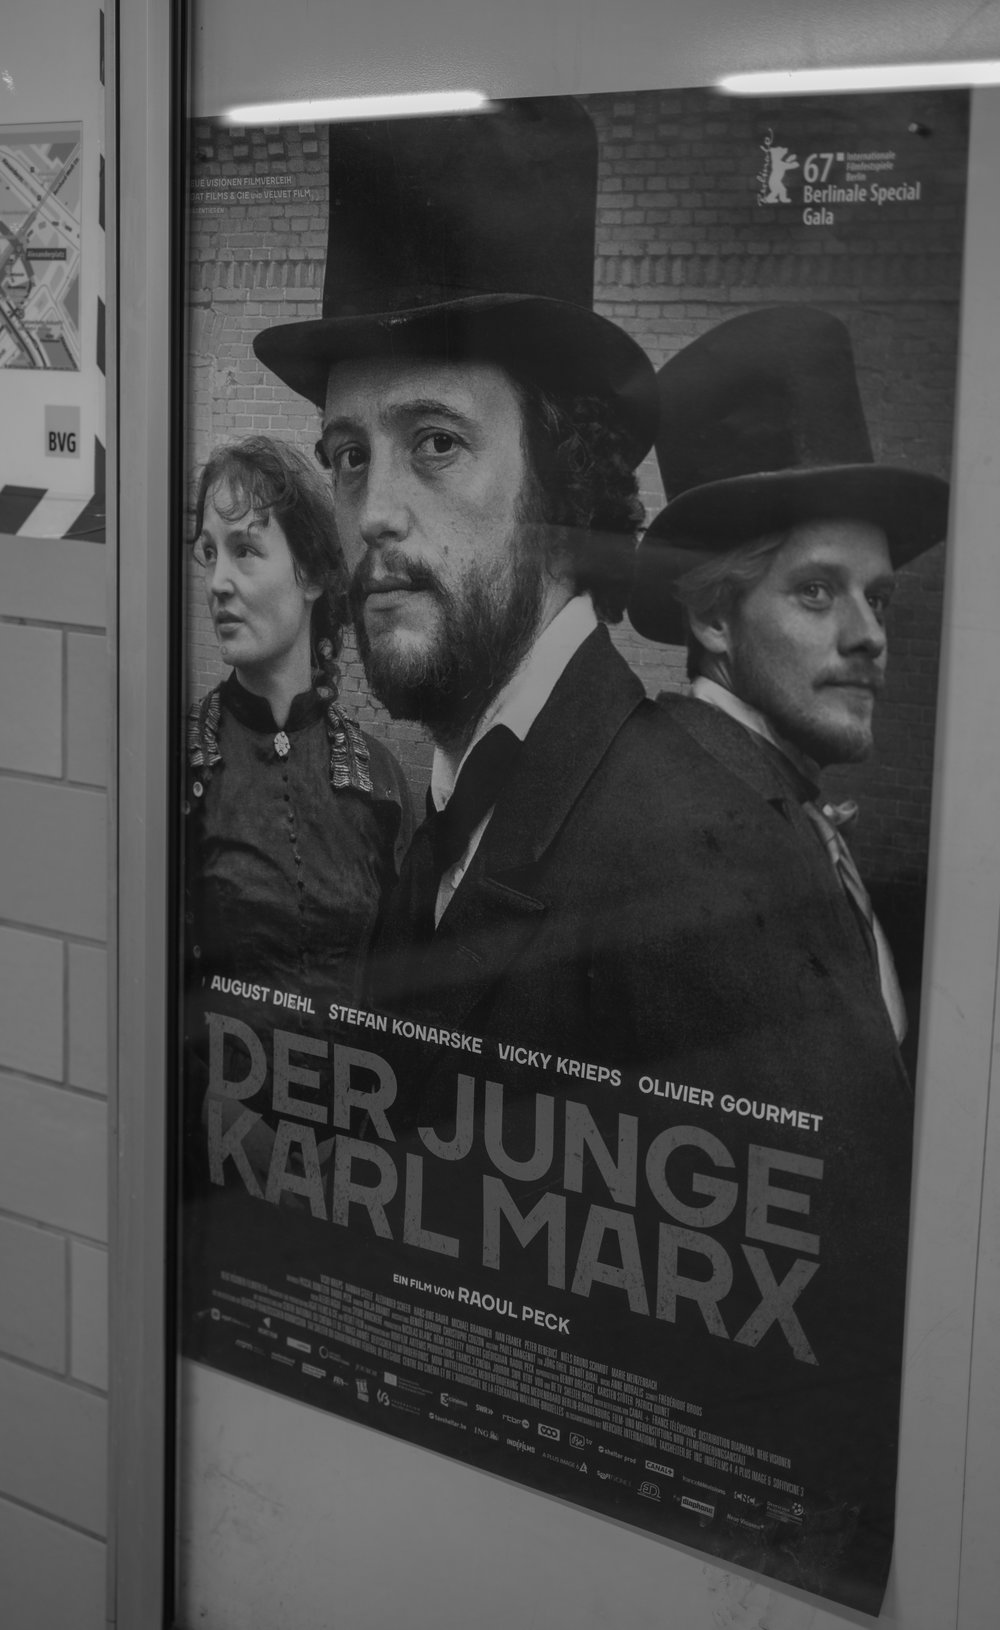 The Young Karl Marx: A man with a lot to answer for